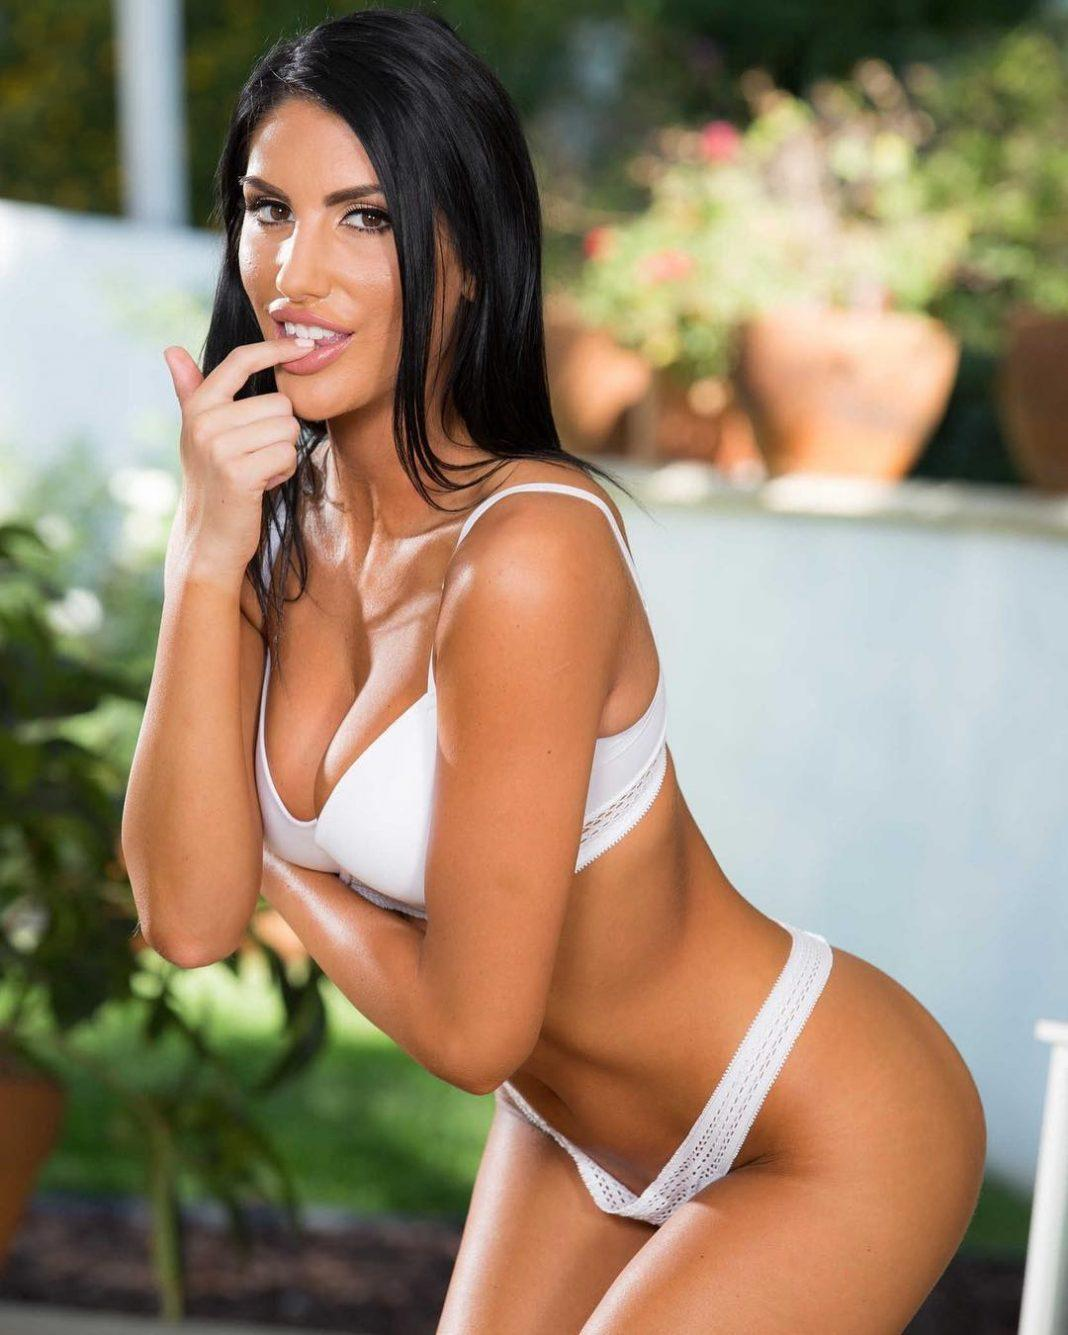 August Ames facts